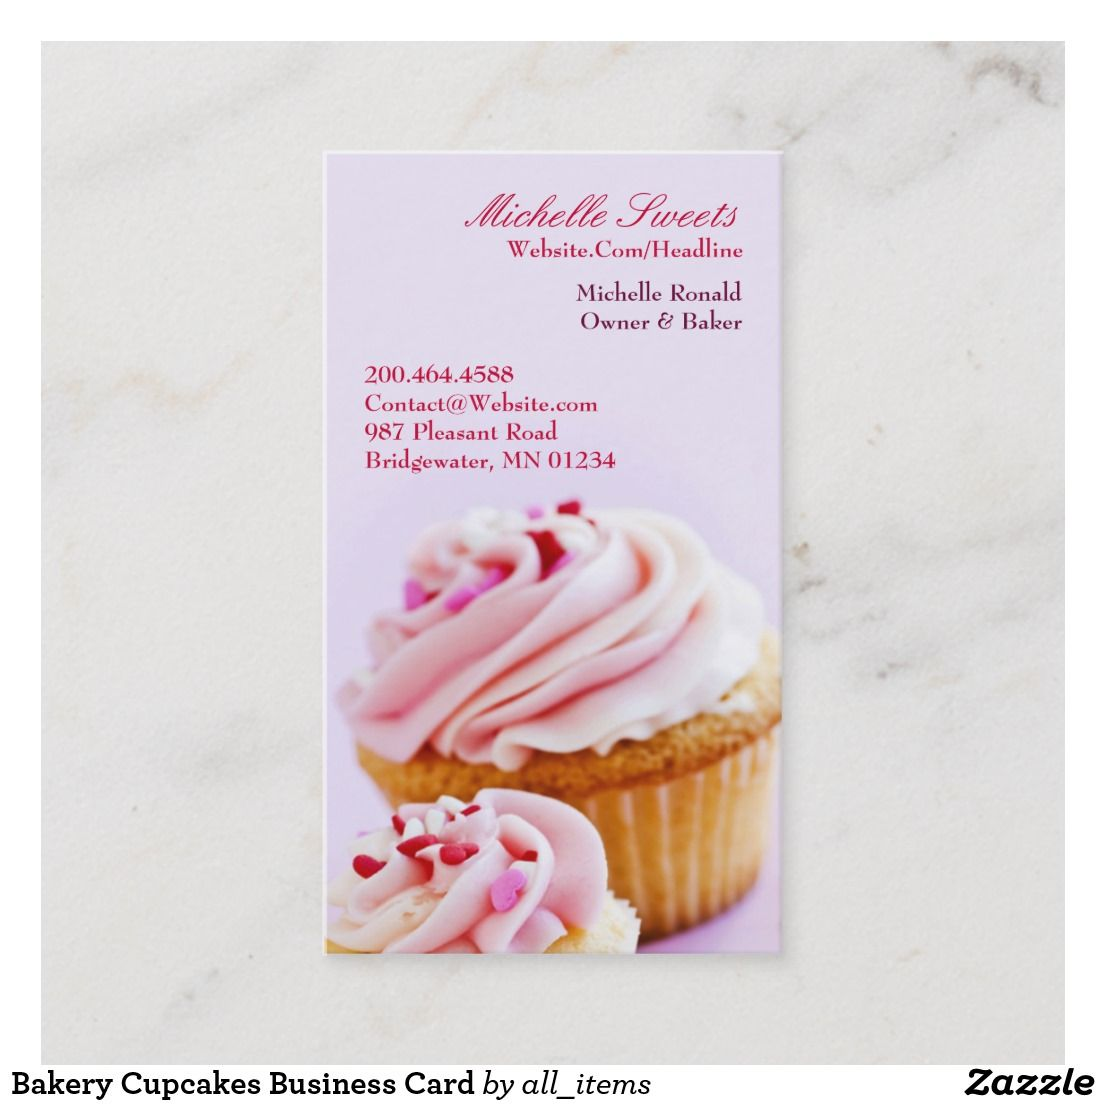 Bakery Cupcakes Business Card Zazzle Com Bakery Business Cards